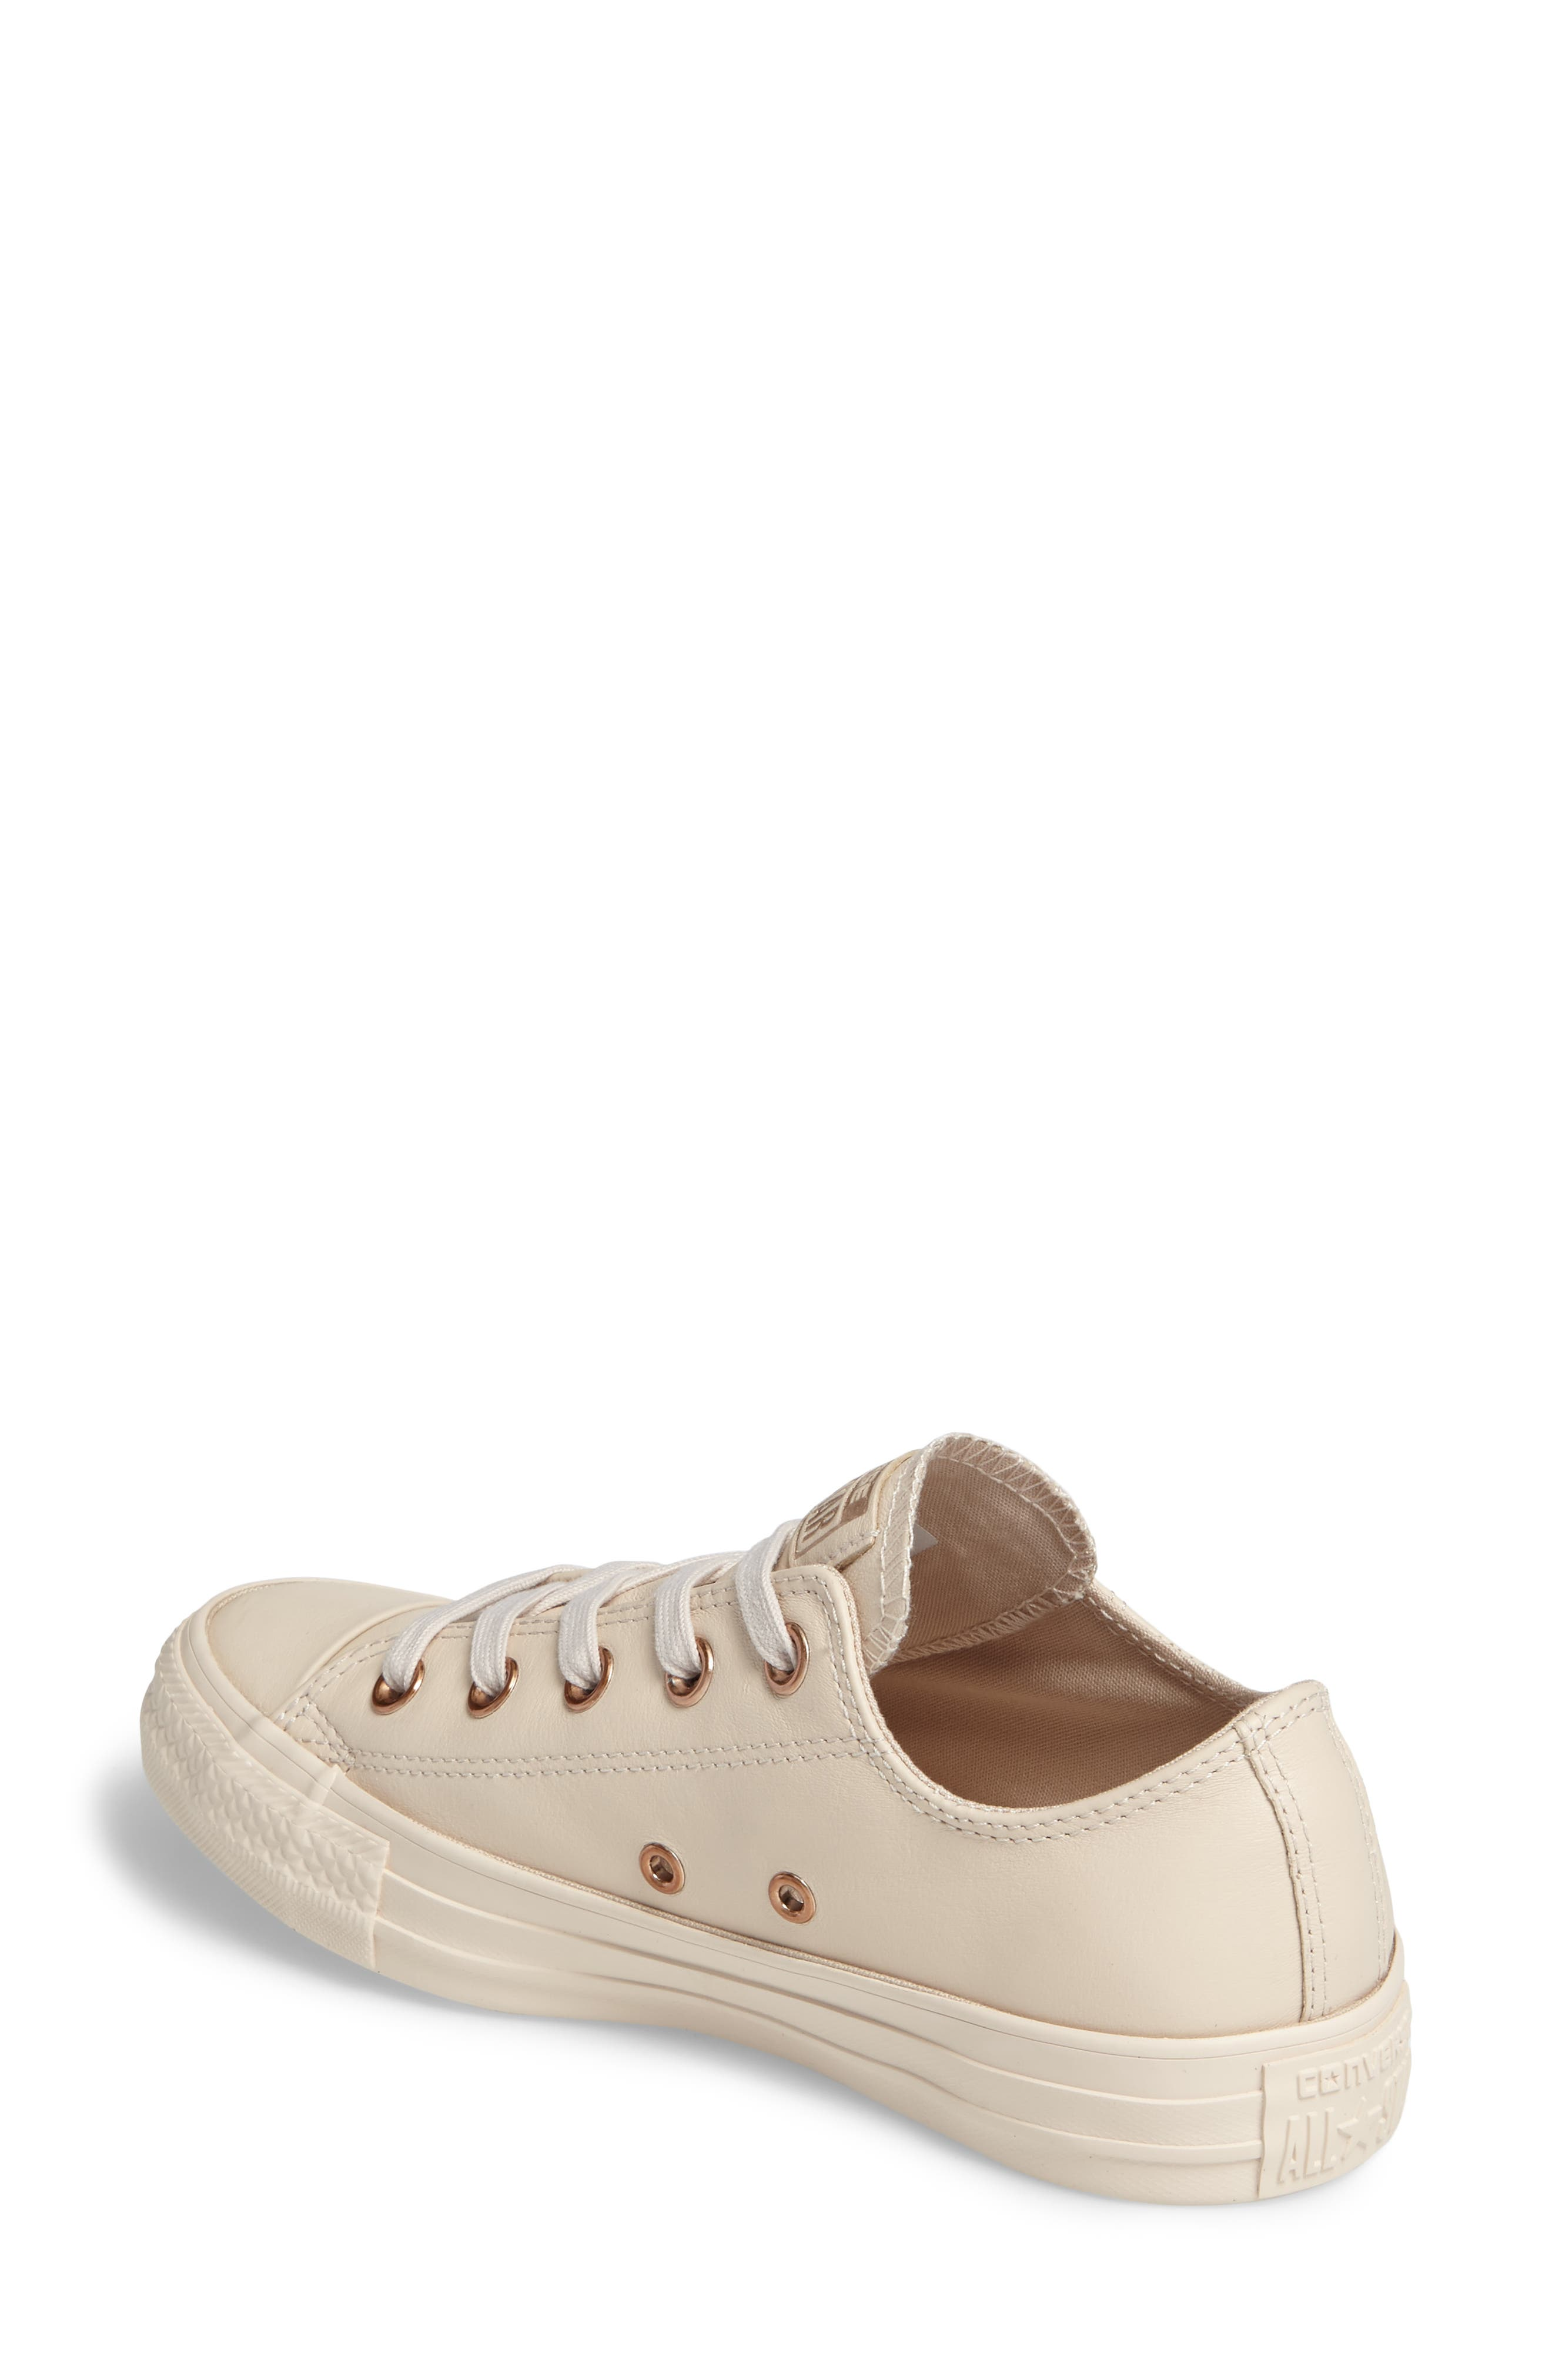 Chuck Taylor<sup>®</sup> All Star<sup>®</sup> Low Sneaker,                             Alternate thumbnail 2, color,